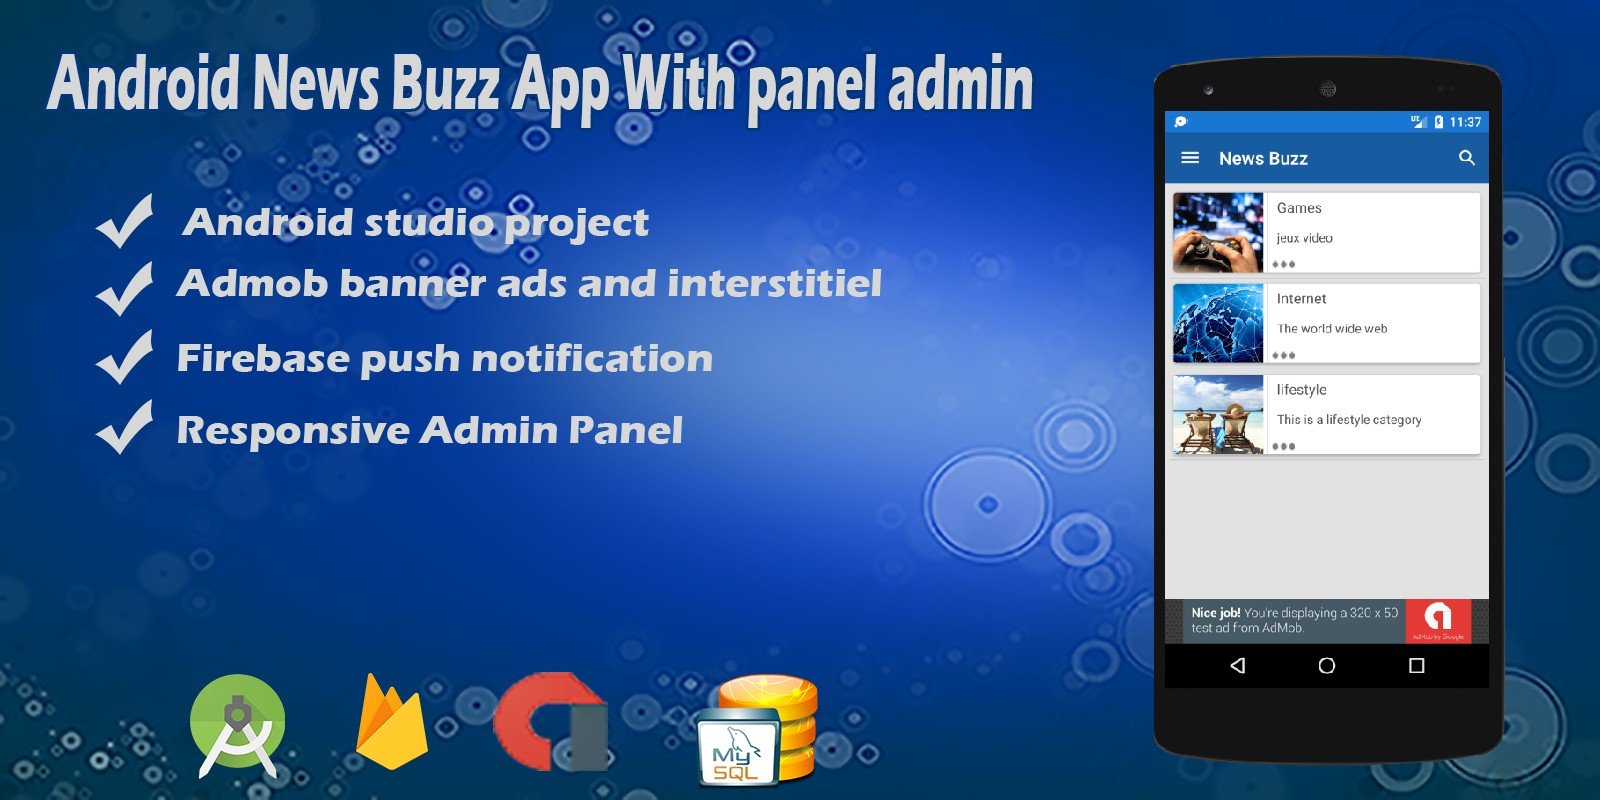 Android News Buzz App